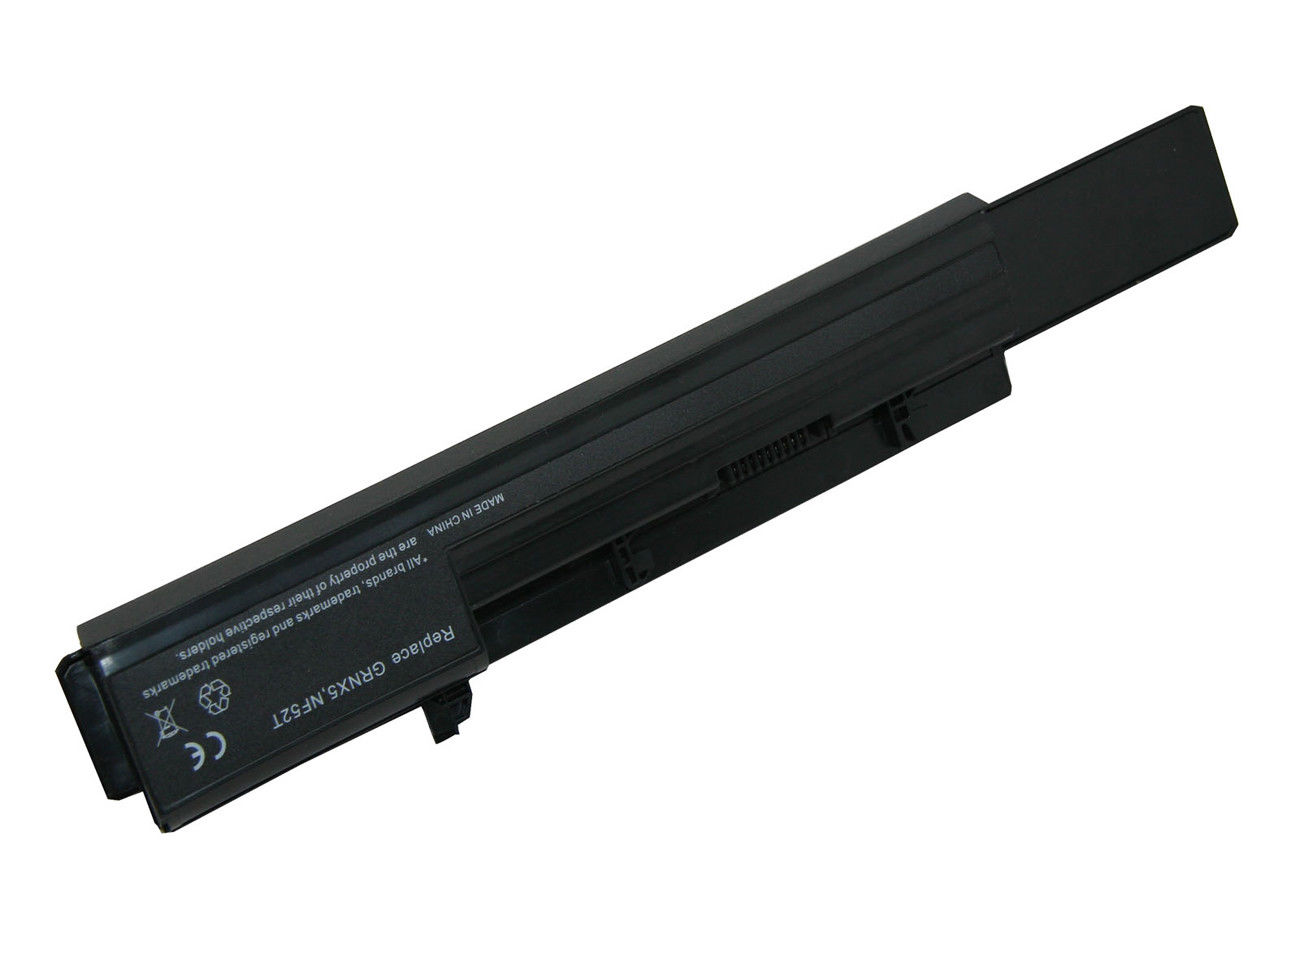 Replacement Dell Vostro 3350 Battery